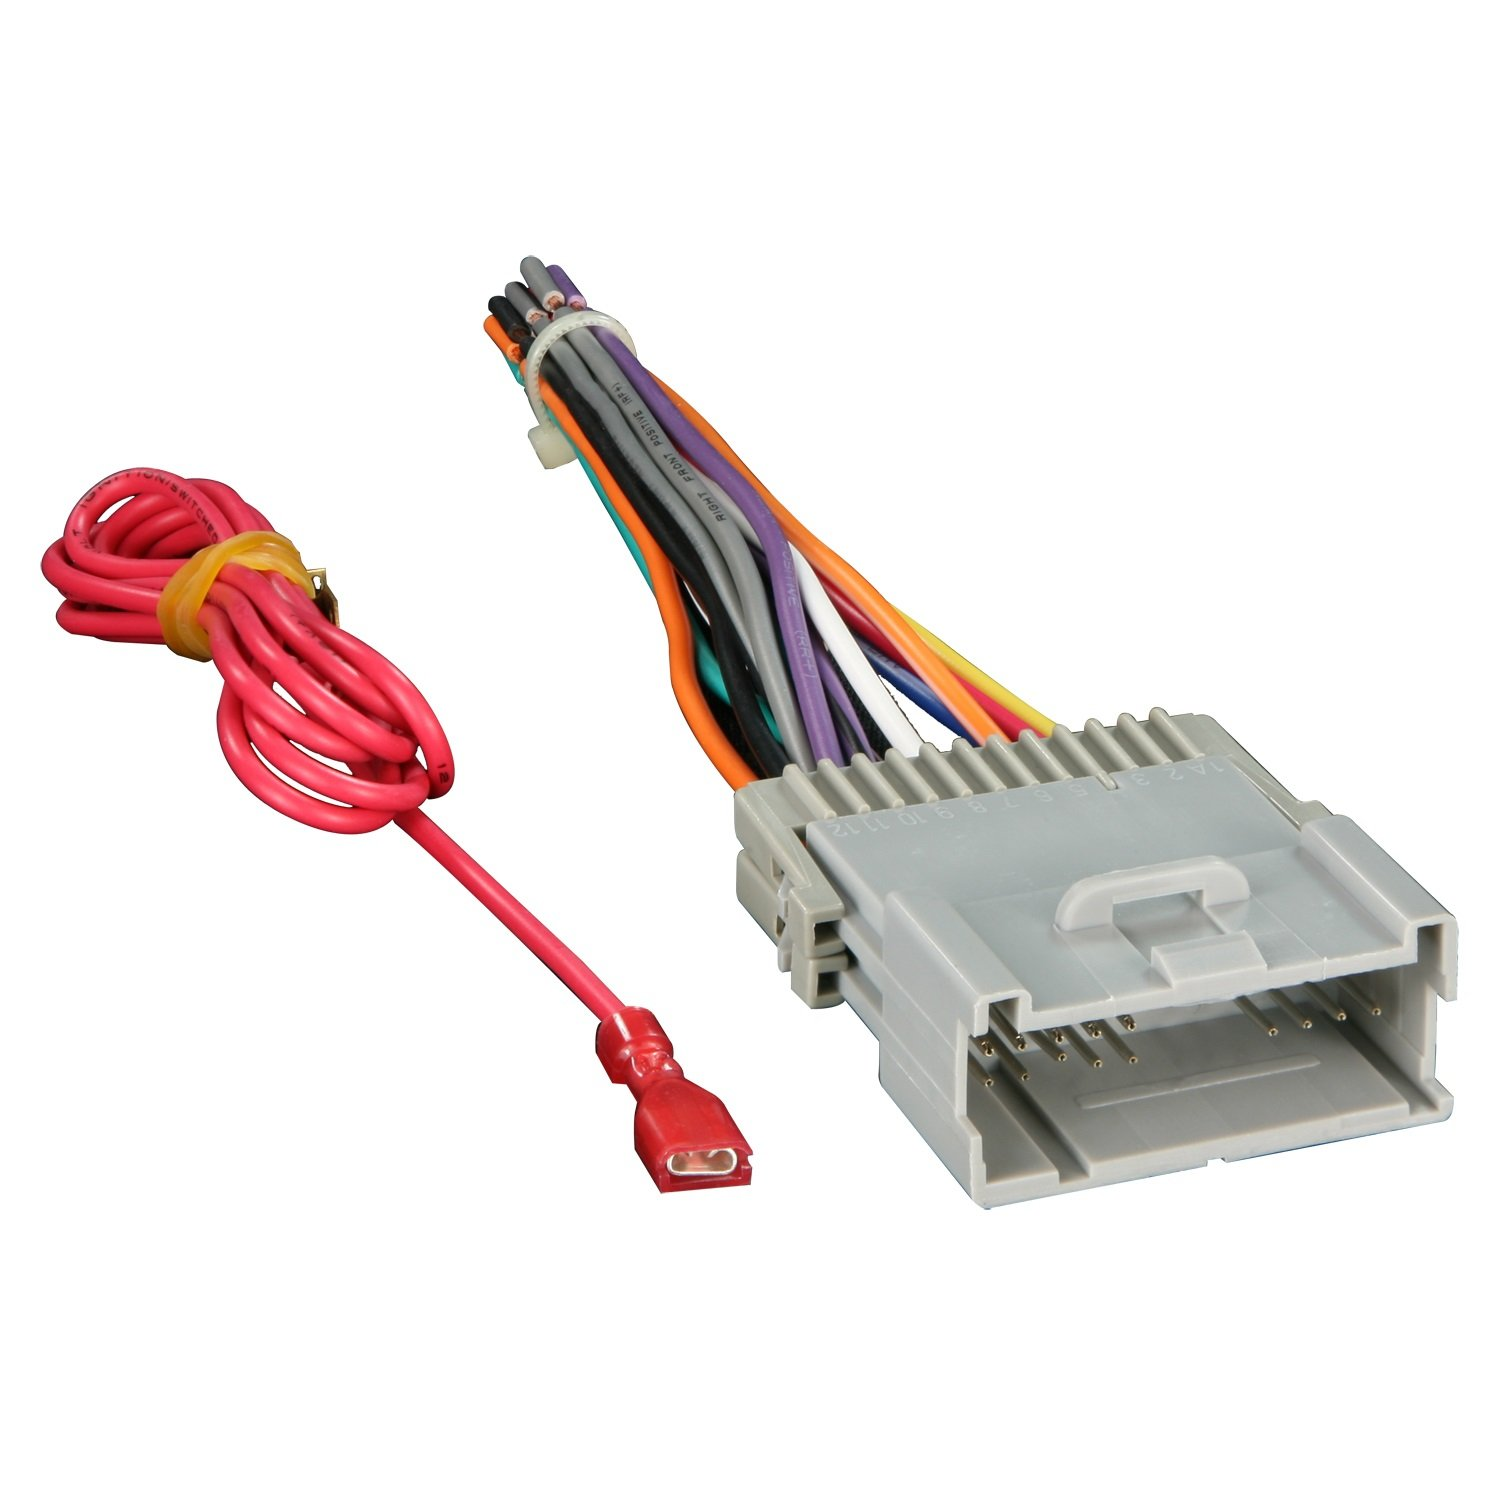 61eewxp9orL._SL1500_ amazon com metra 70 2003 radio wiring harness for gm 98 08 snap on wire harness adapter at webbmarketing.co